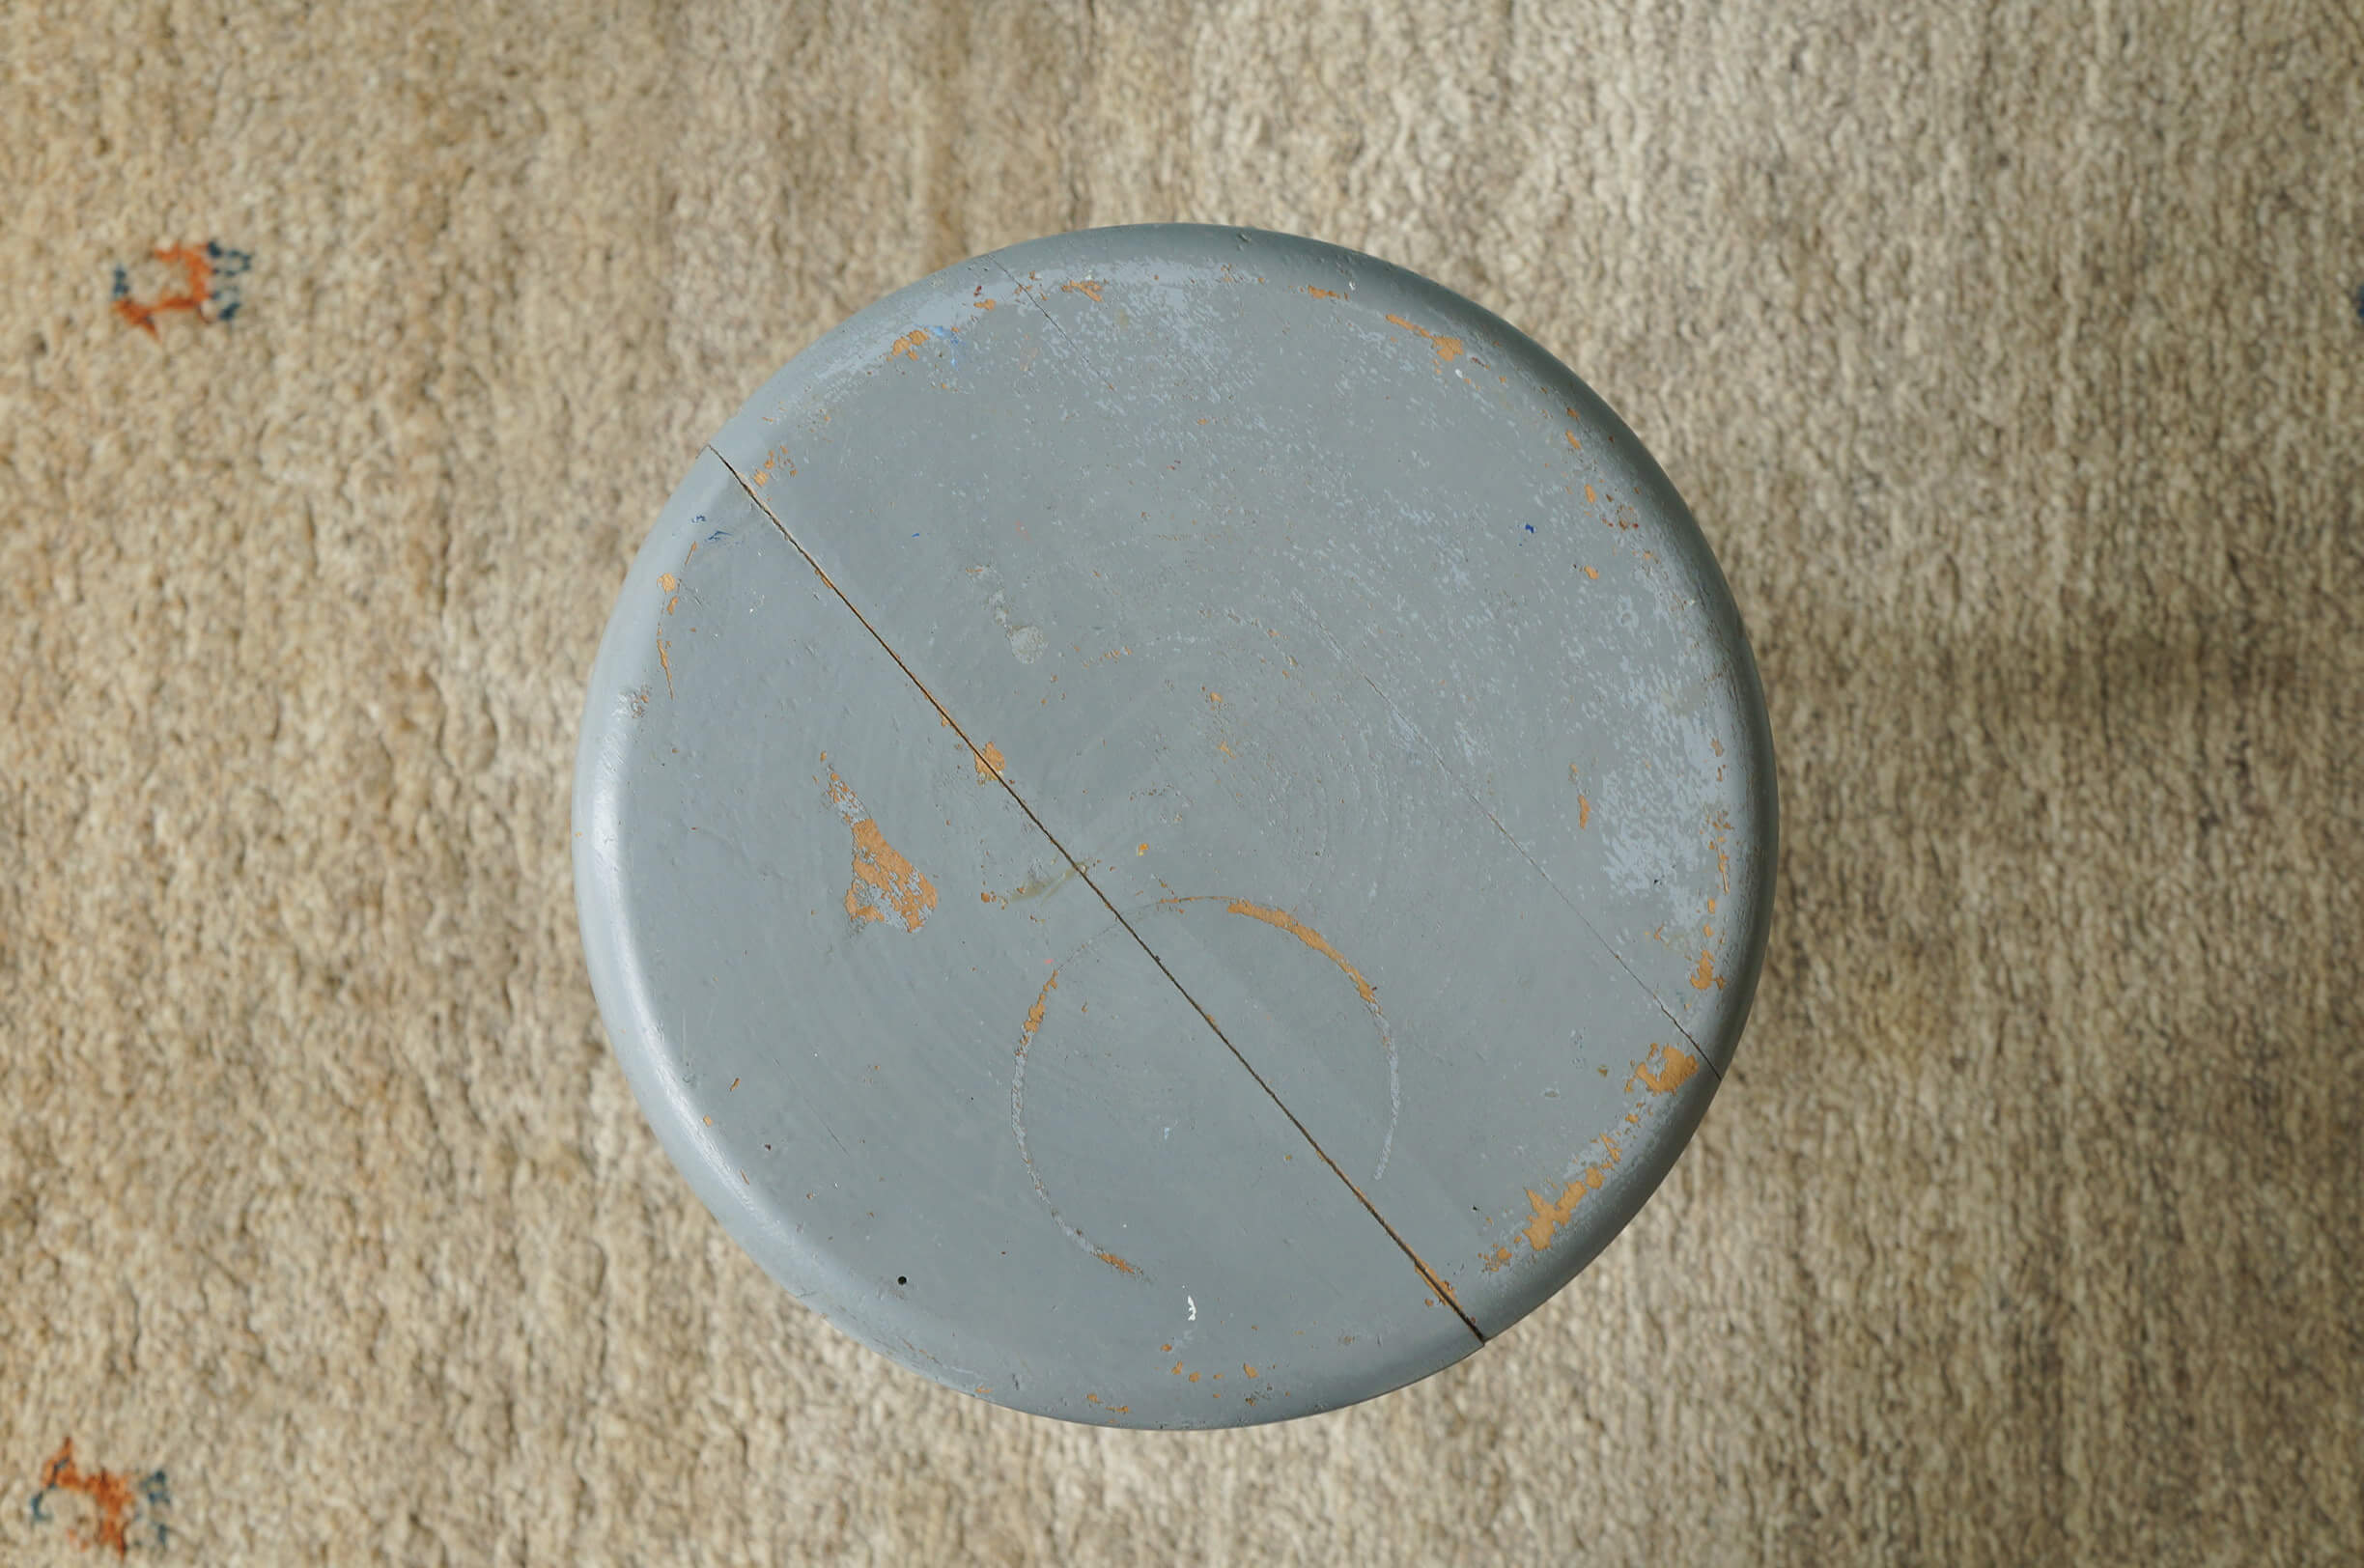 Vintage Round Atelier Stool Painted Gray/ヴィンテージ ラウンドアトリエスツール 丸椅子 グレーペイント シャビーシック 2